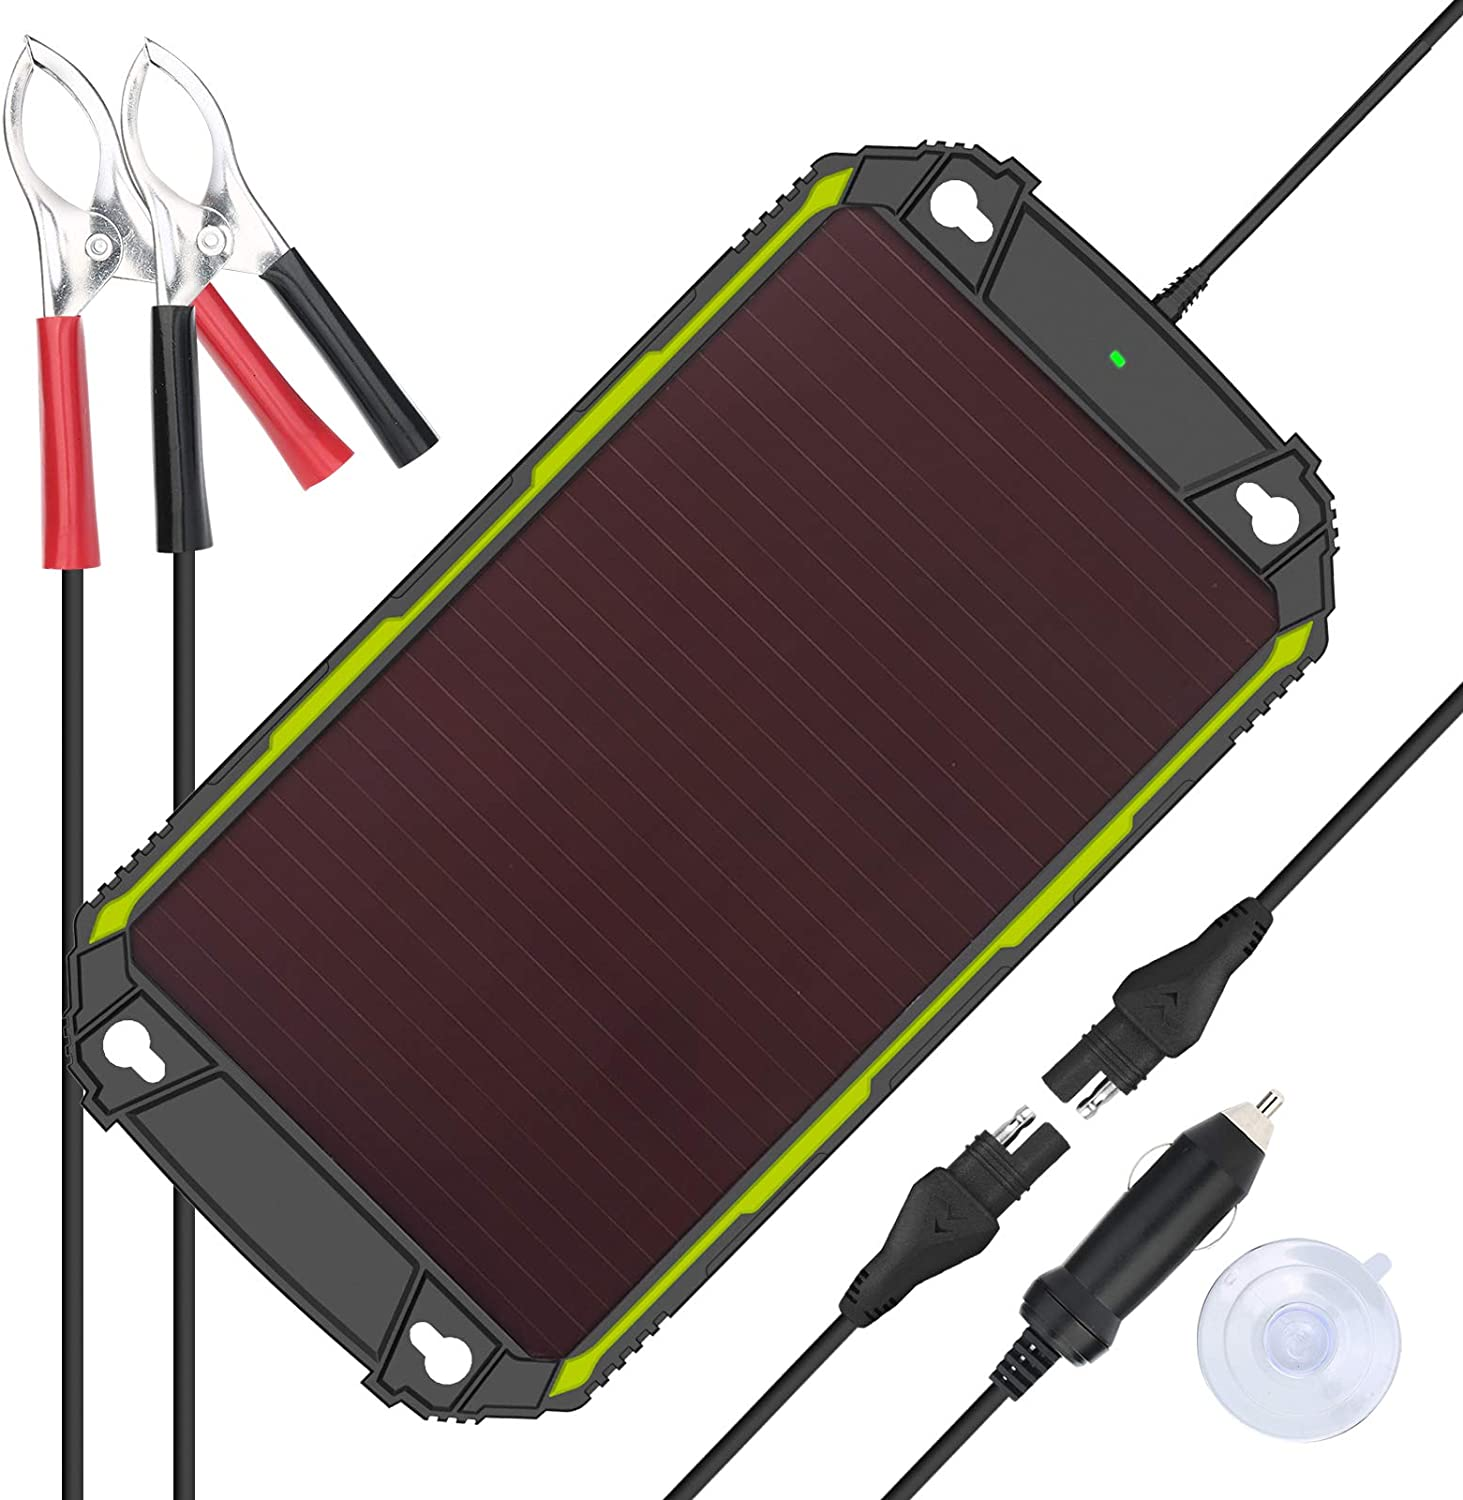 Sun Energise Waterproof 12V Manufacturer regenerated product Be super welcome 5W Solar Battery Built Charger Pro -